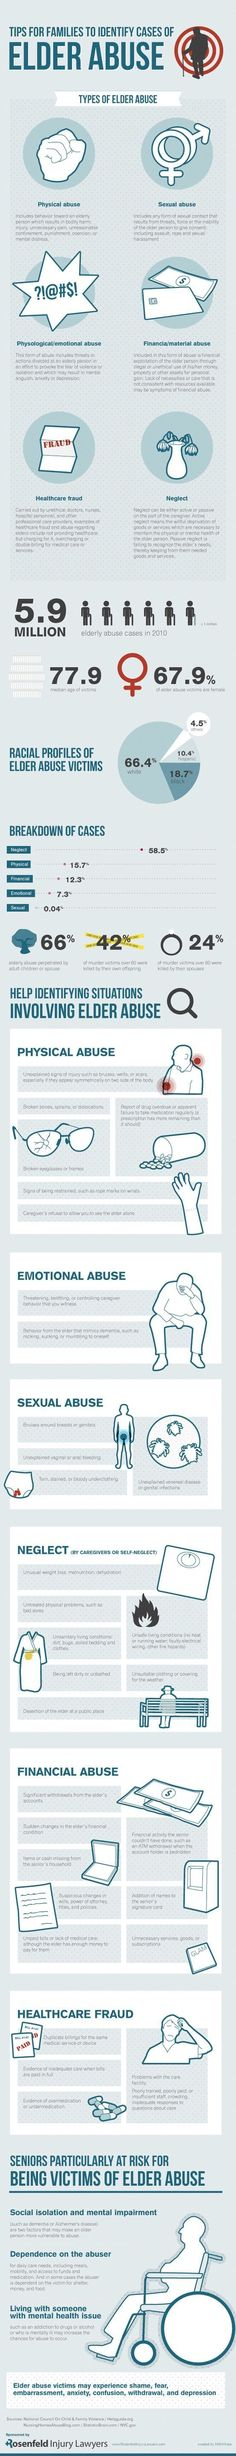 Elder abuse comes in many shapes and forms.  Be aware. #elderabuse #caregiver #elderlycaregiver